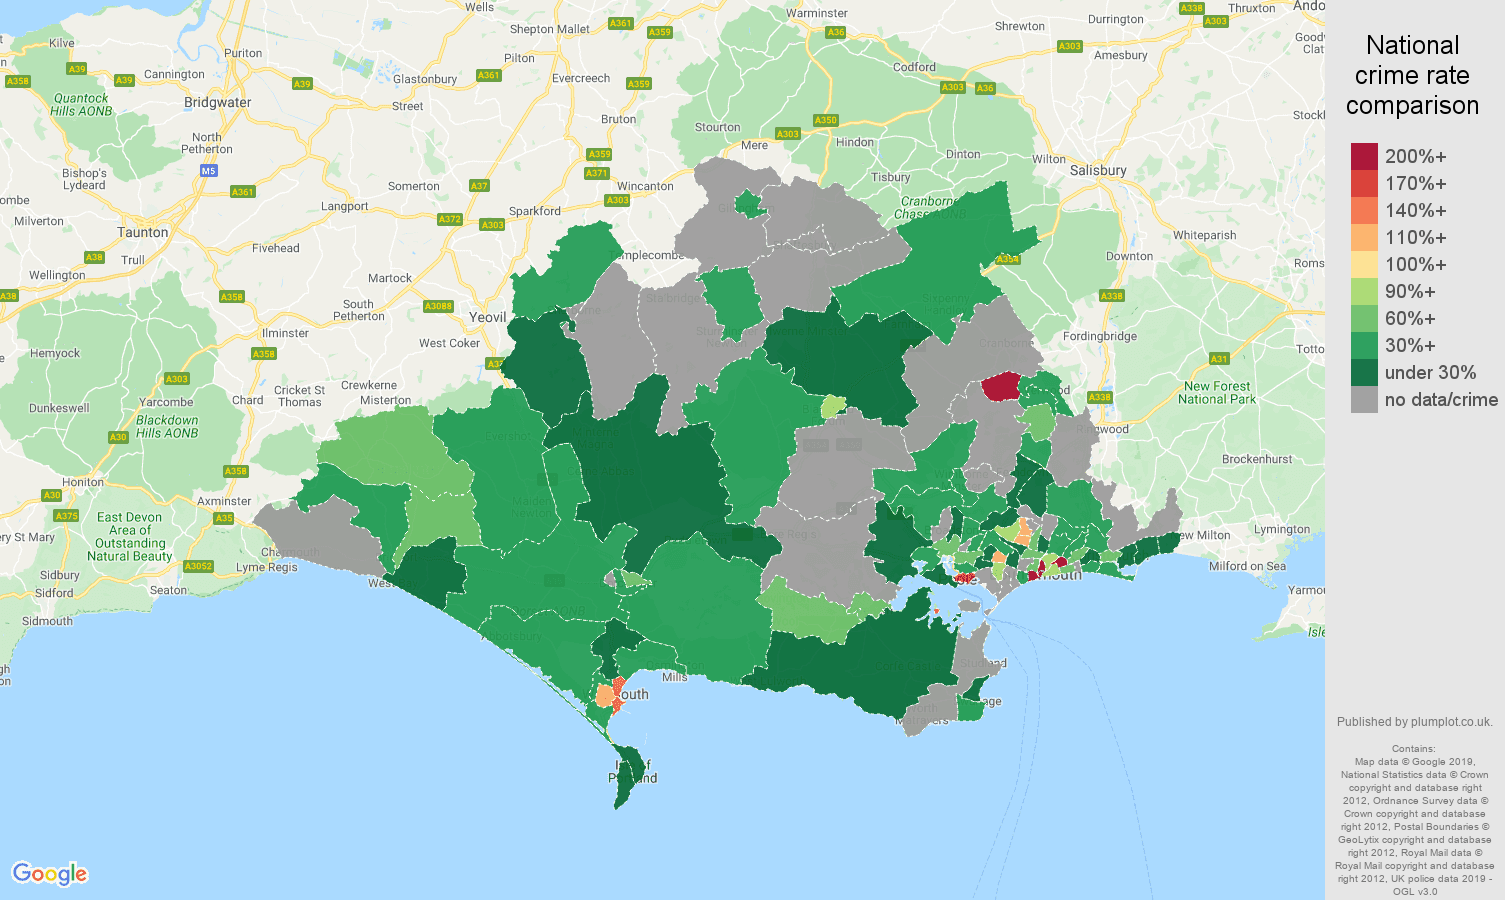 Dorset possession of weapons crime rate comparison map